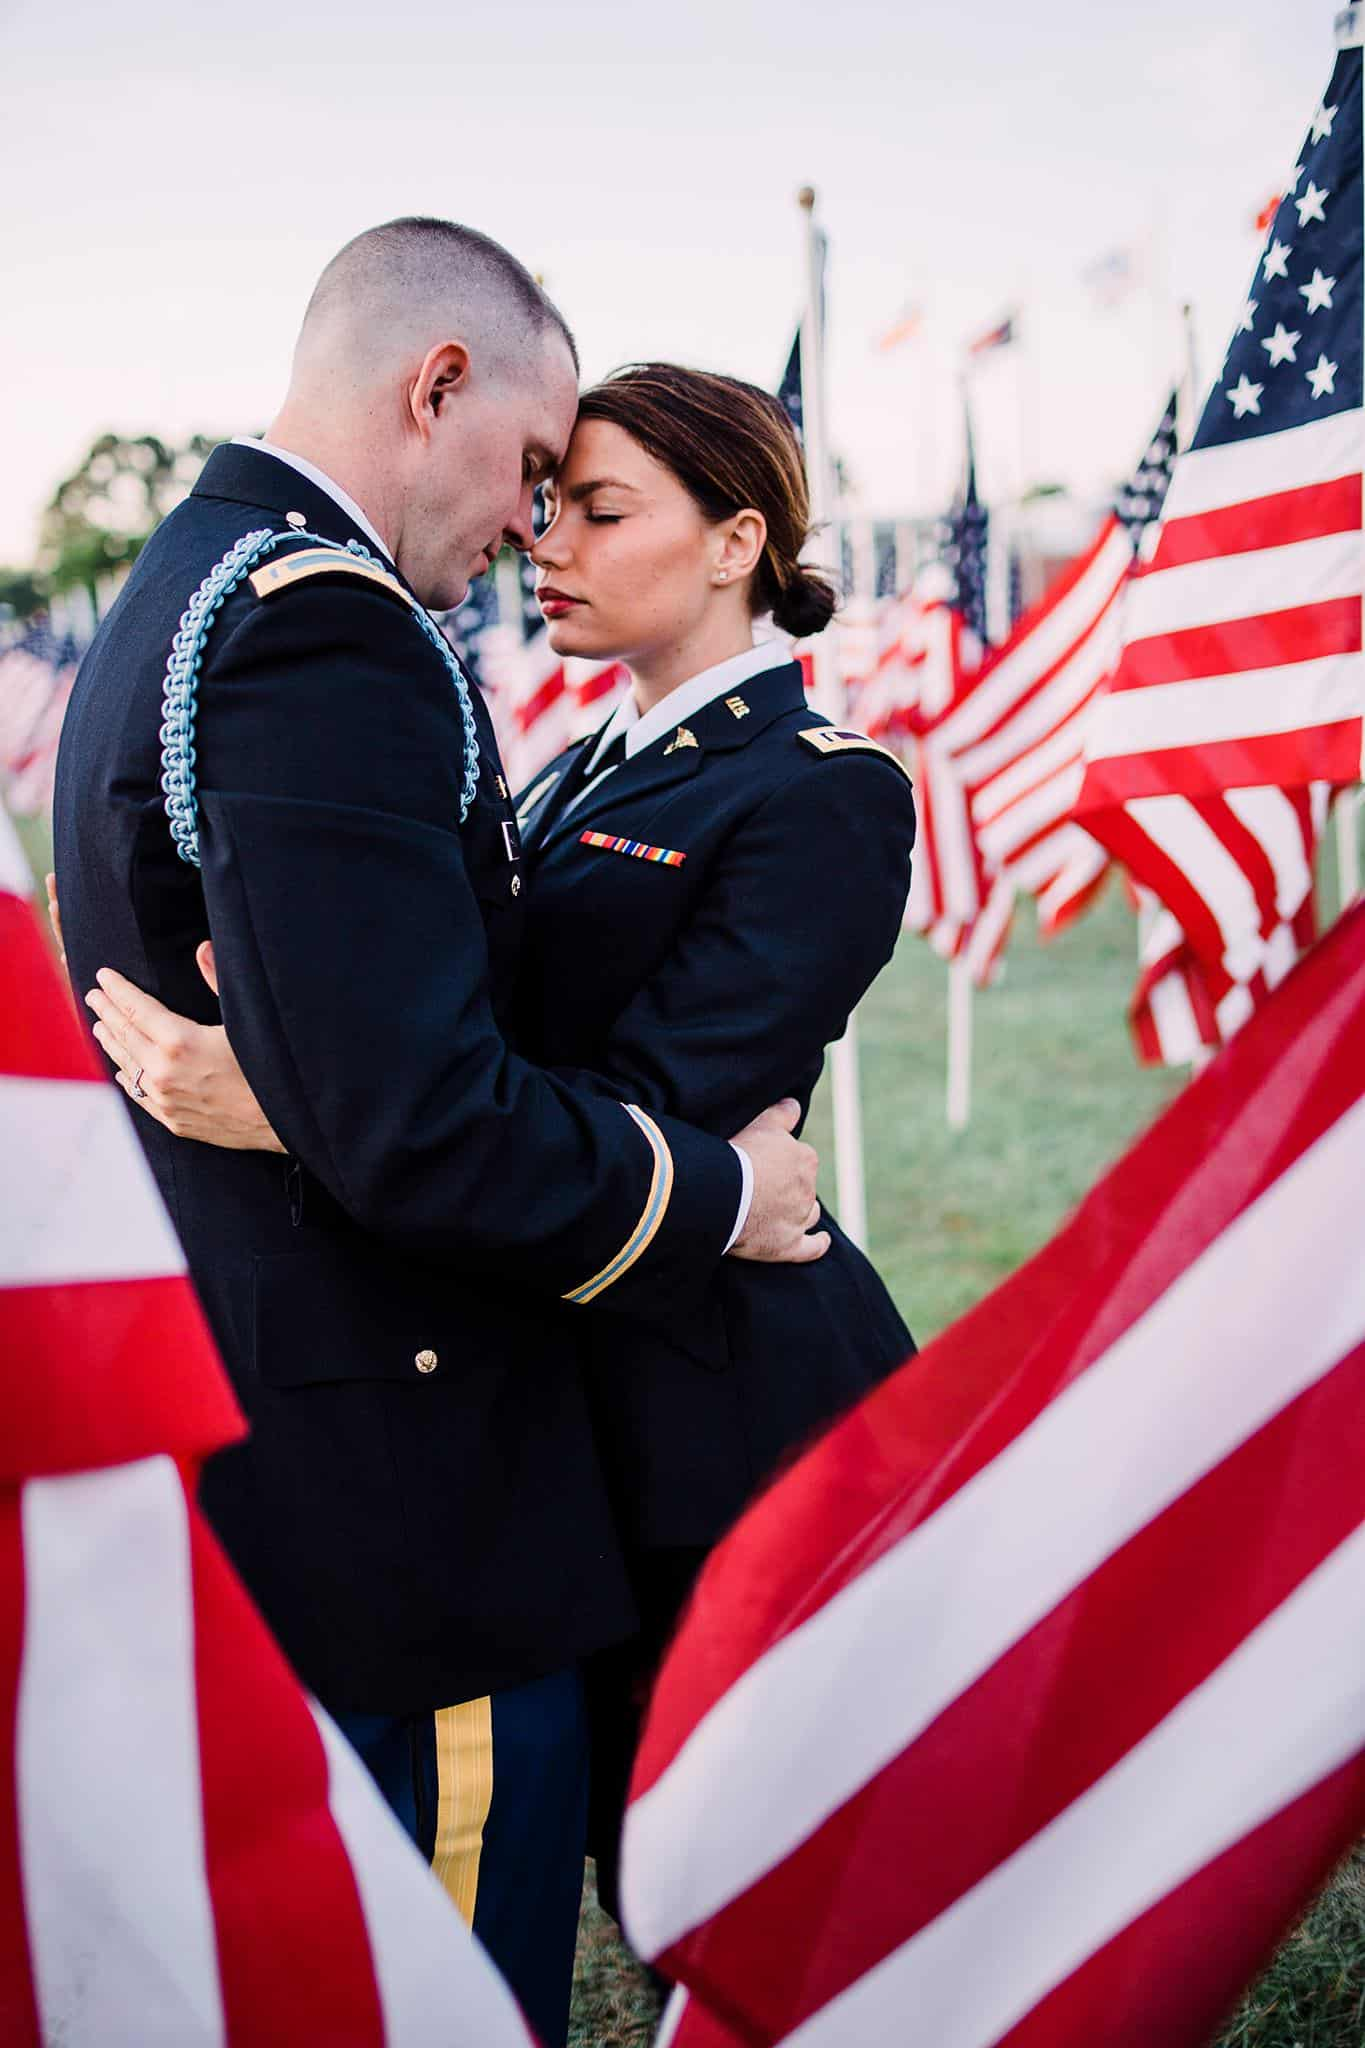 A couple in uniform framed by the US flag